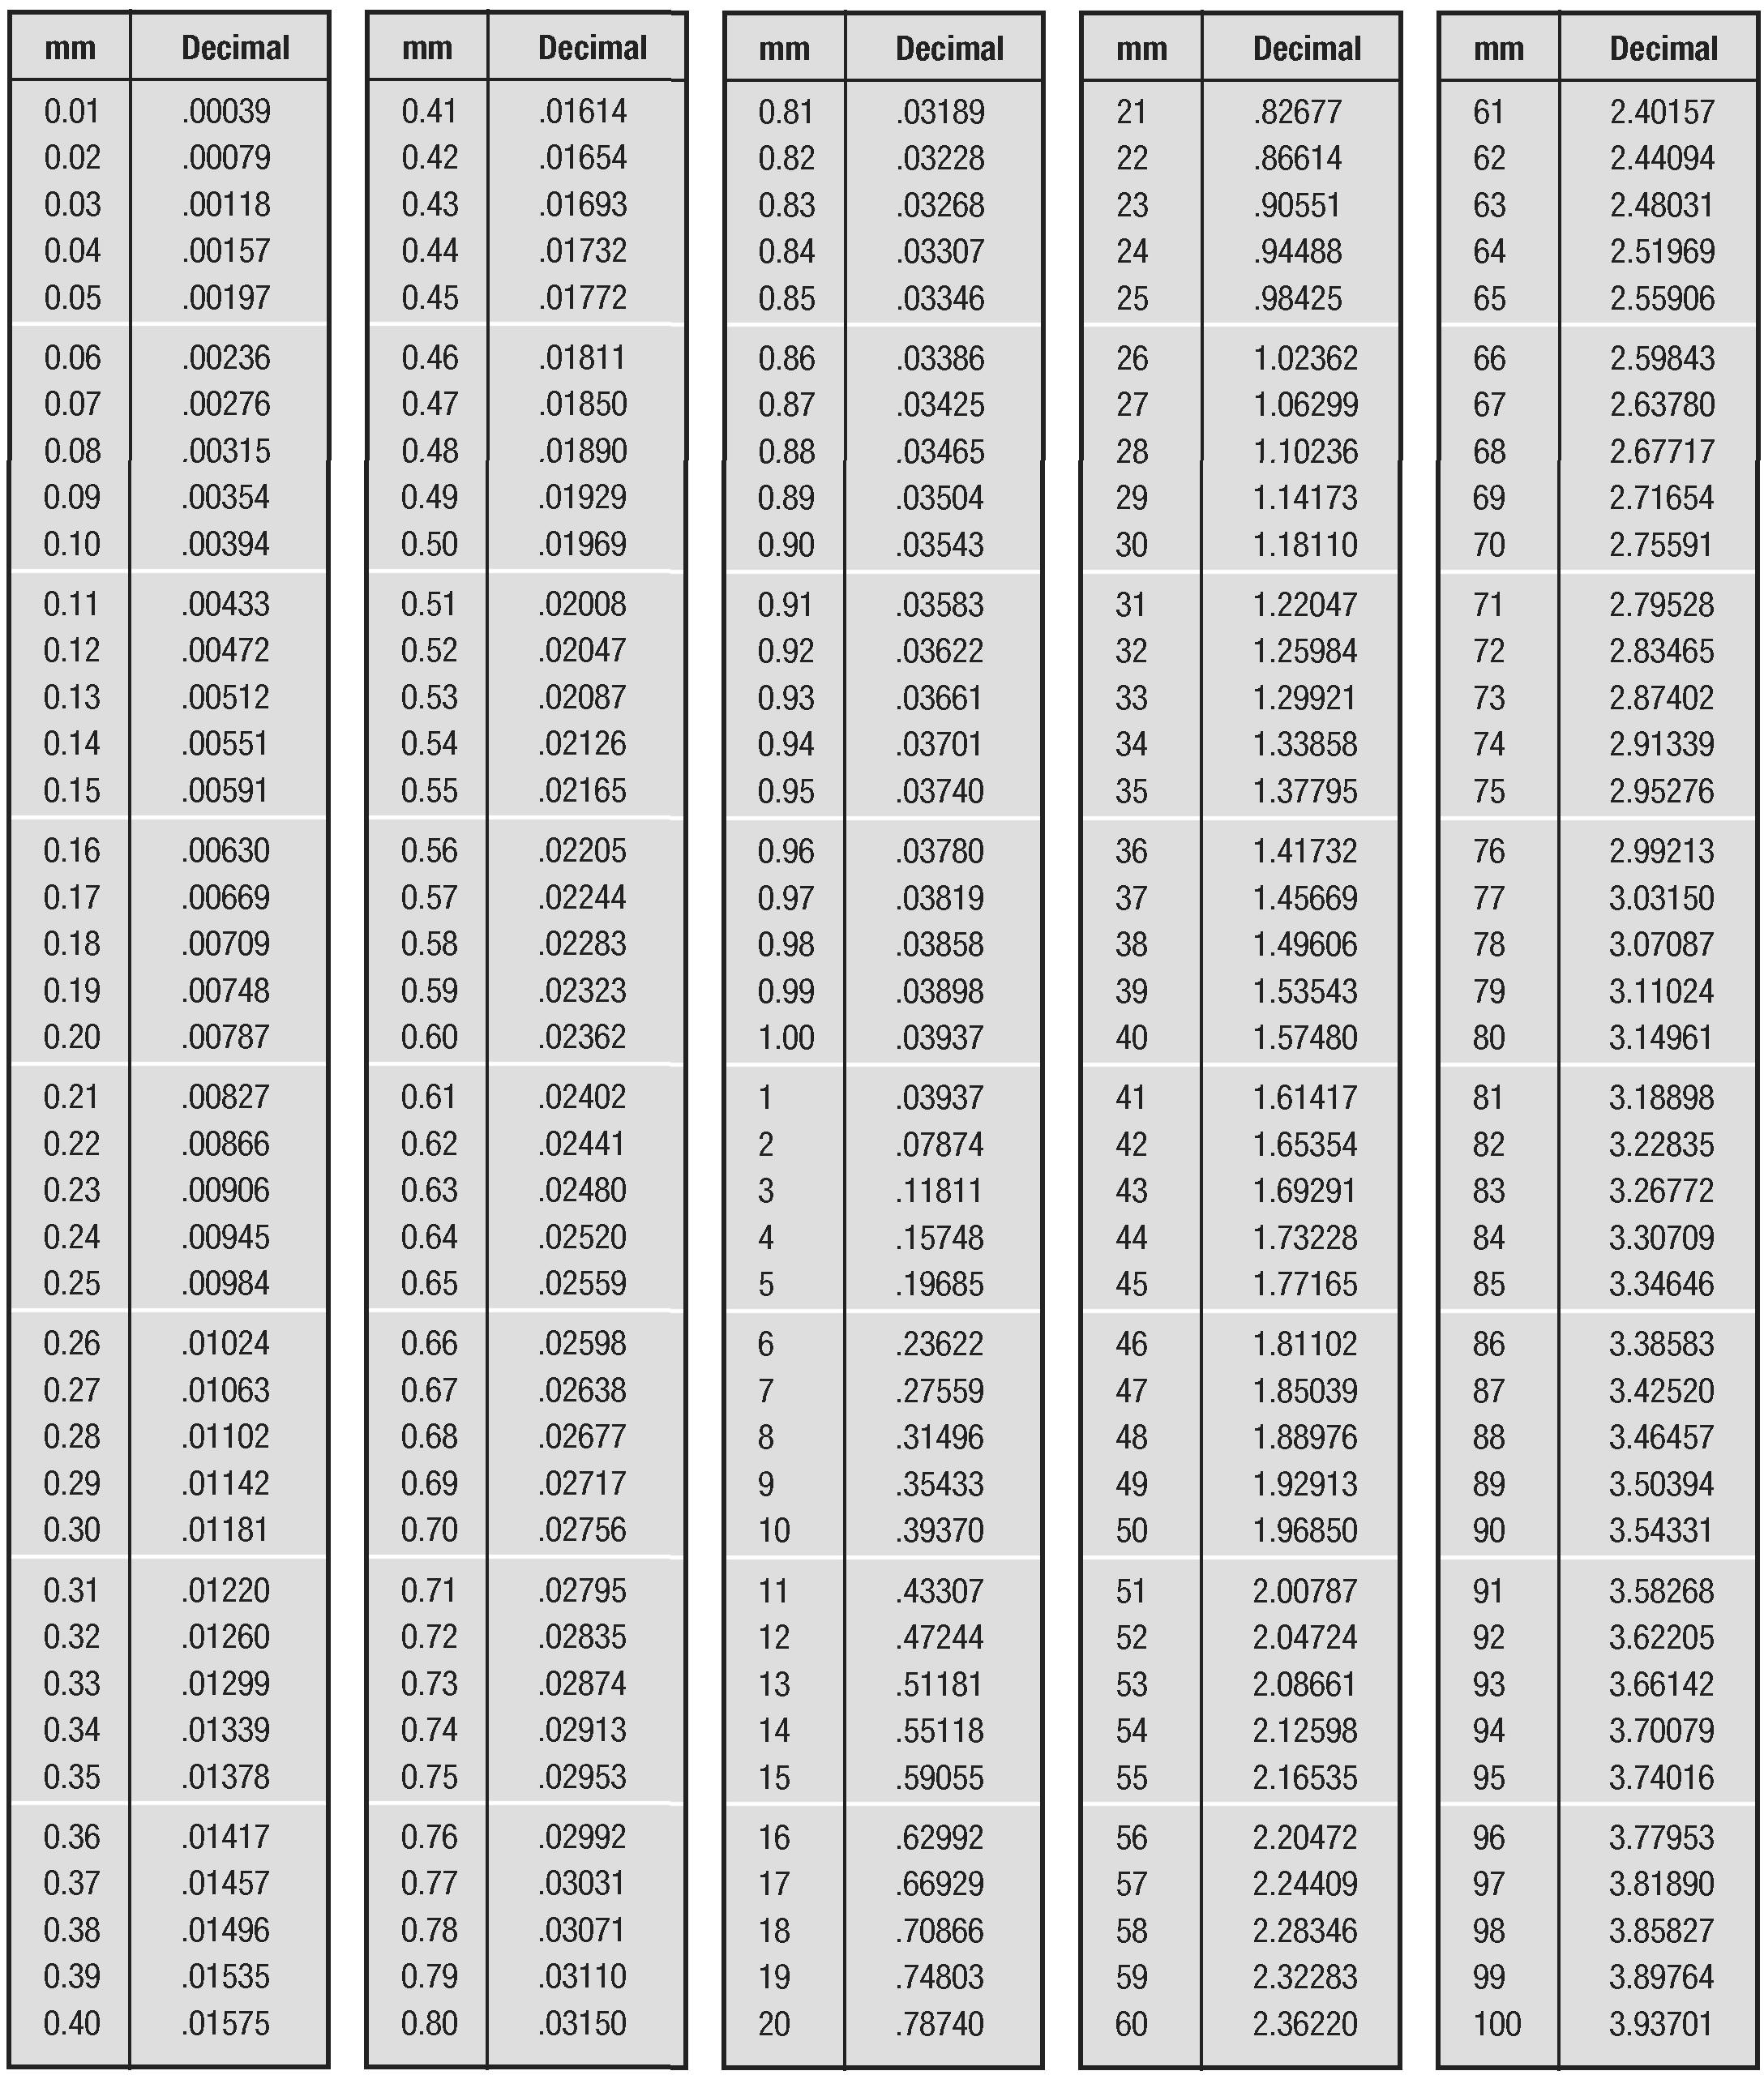 inches to millimeters conversion table pdf